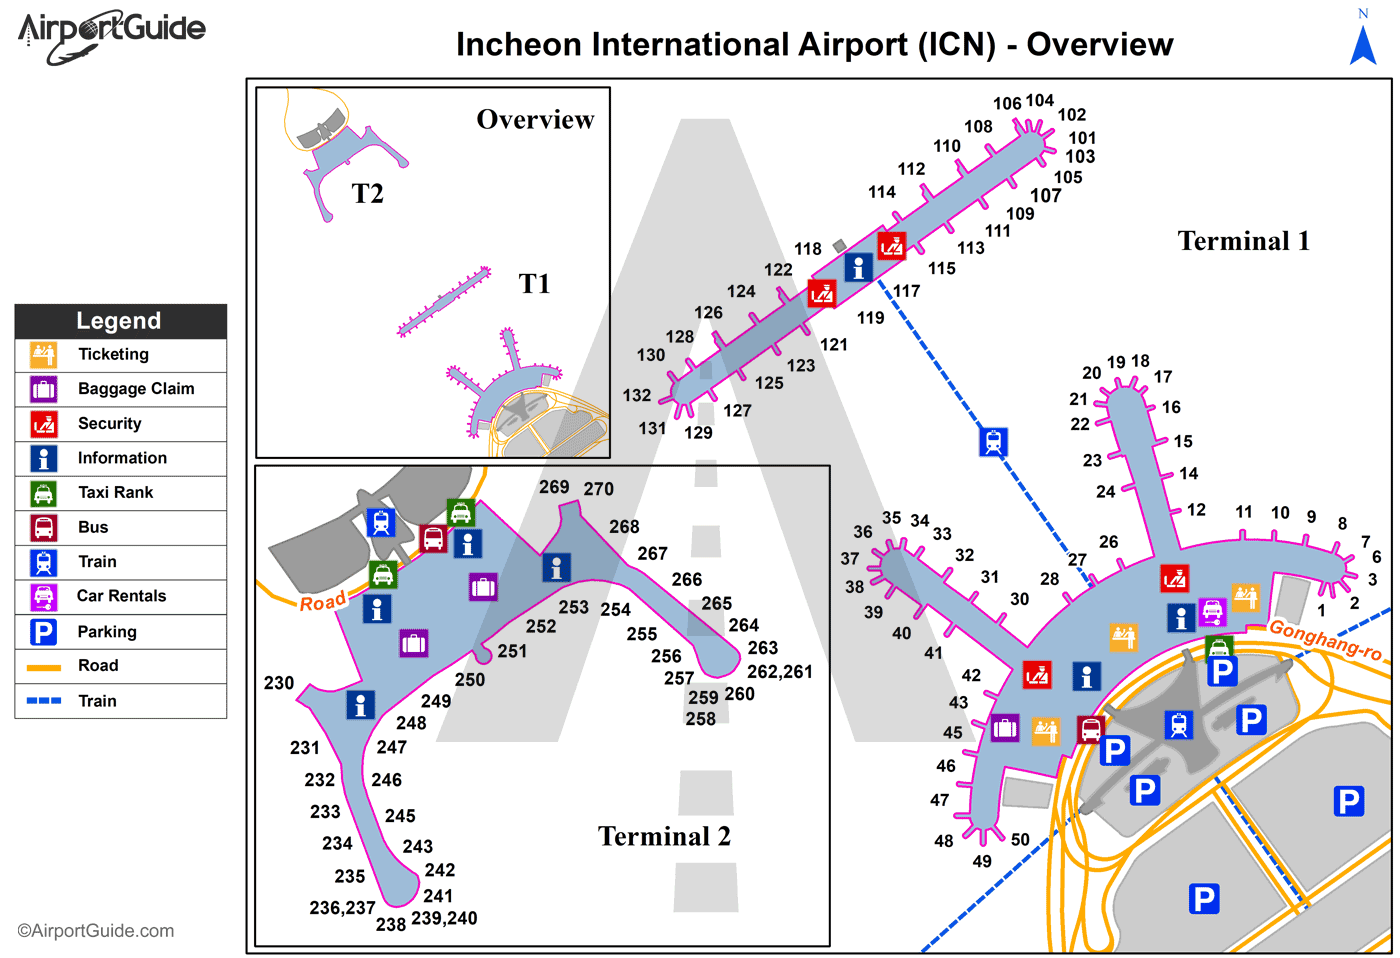 Seoul - Incheon International (ICN) Airport Terminal Map - Overview